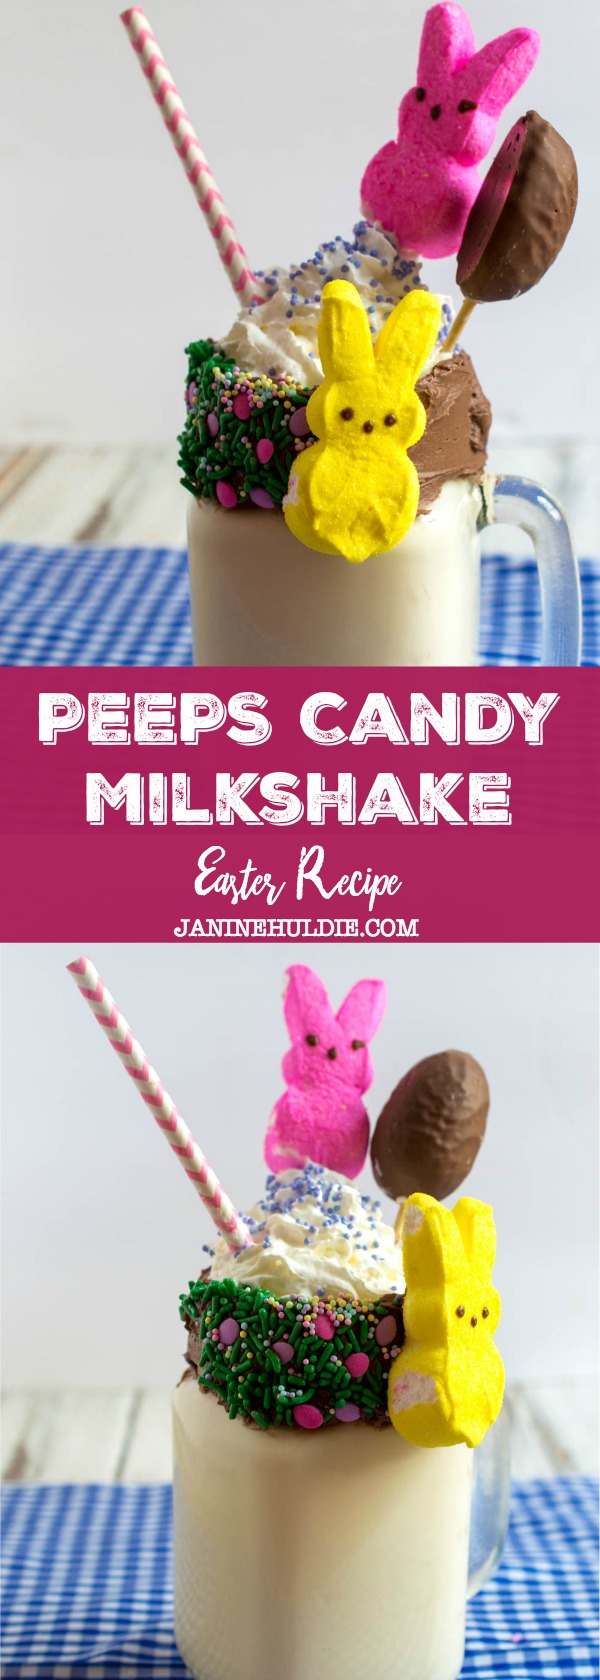 Peeps Candy Milkshake Recipe